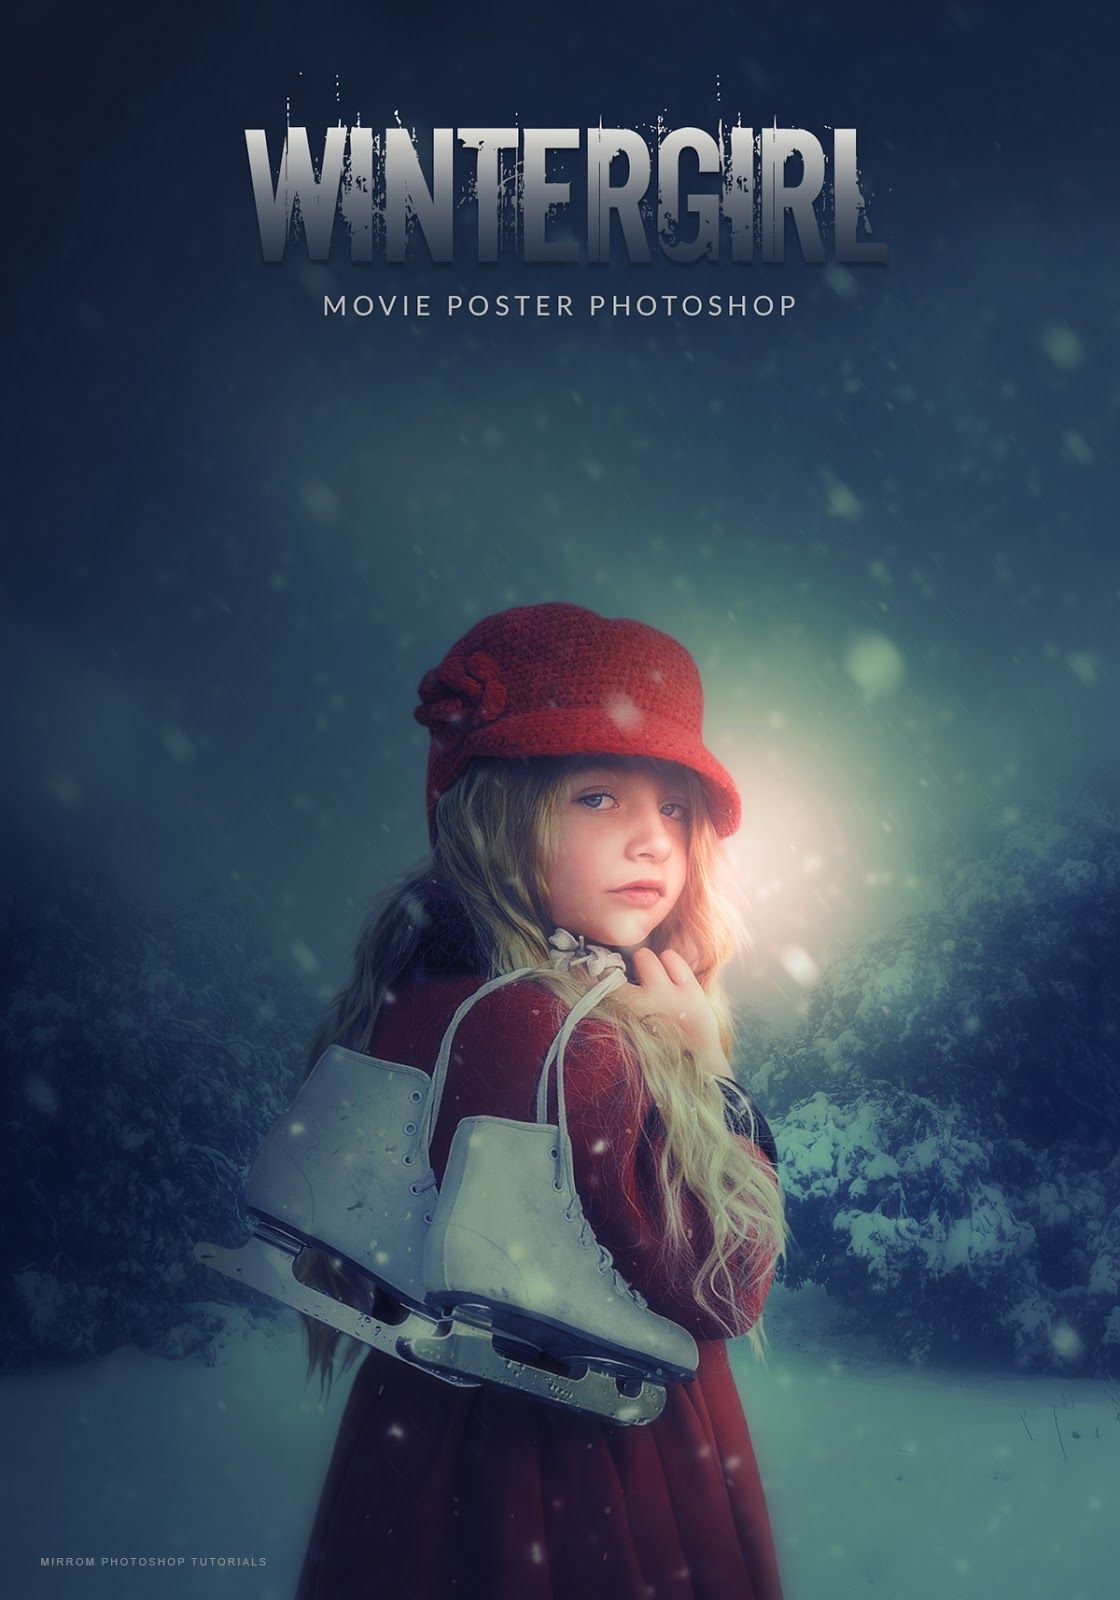 Create a movie poster with photoshop